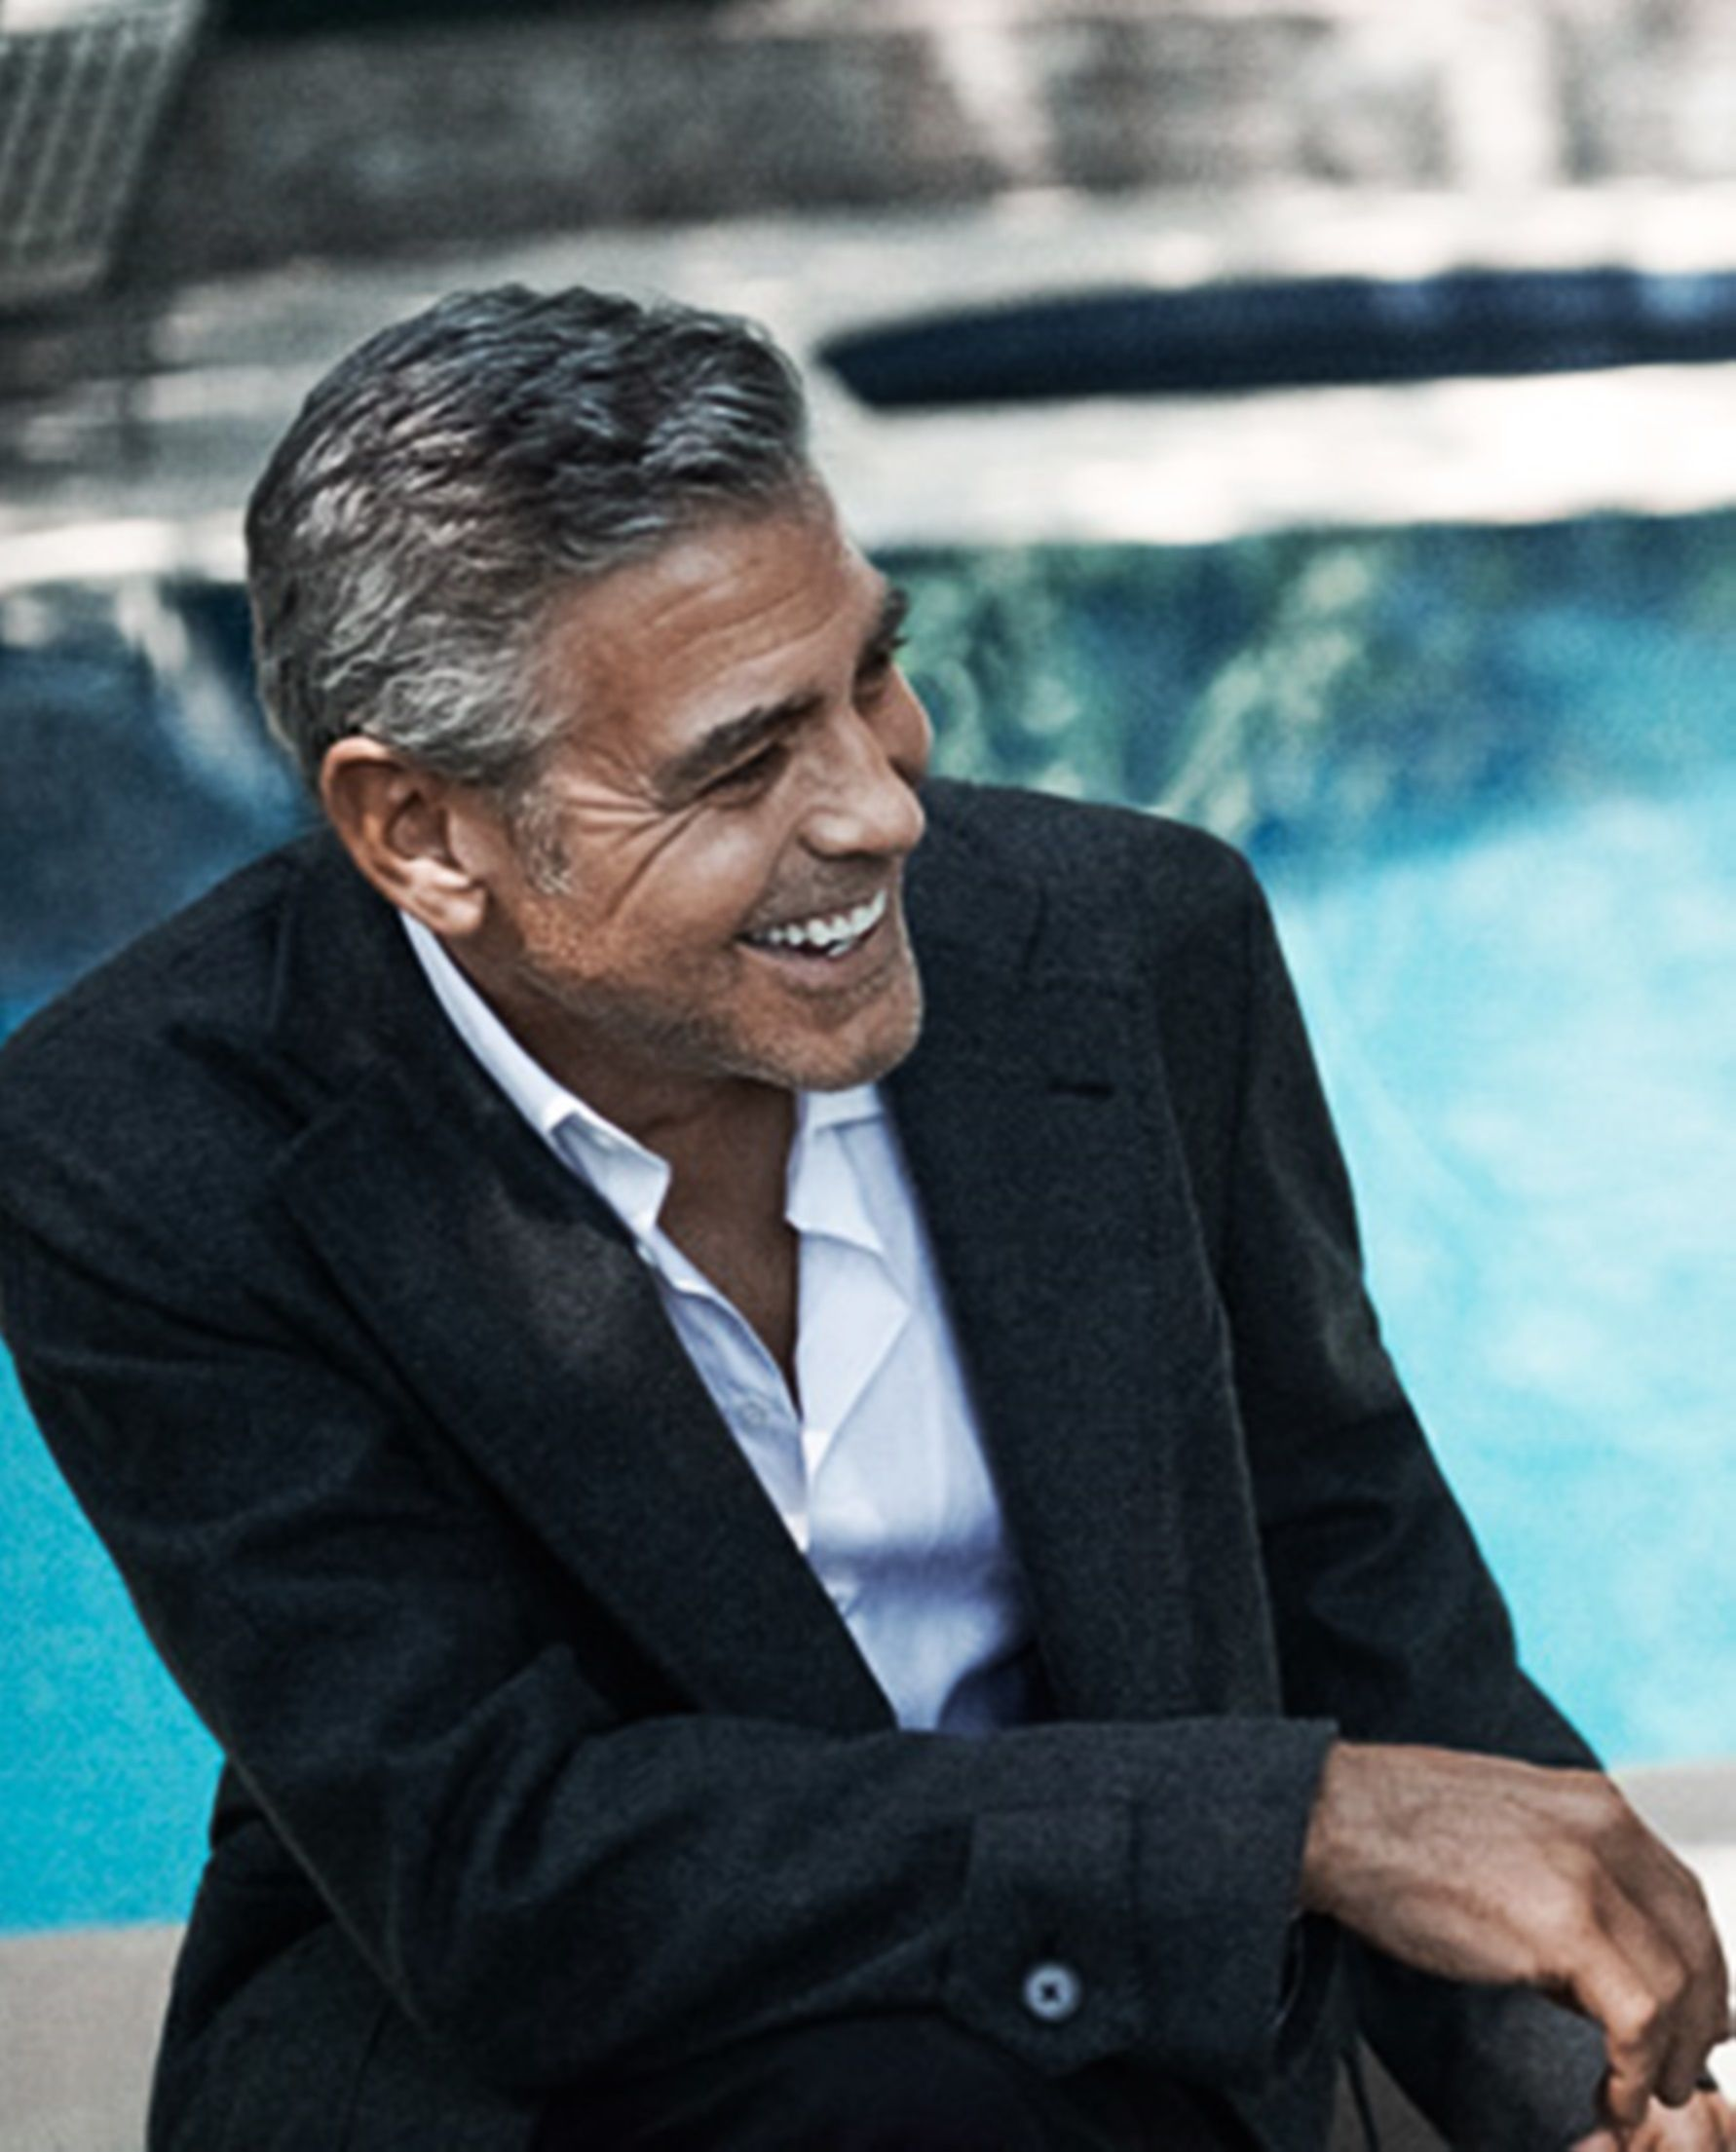 george clooney new hollywood pinterest schauspieler. Black Bedroom Furniture Sets. Home Design Ideas